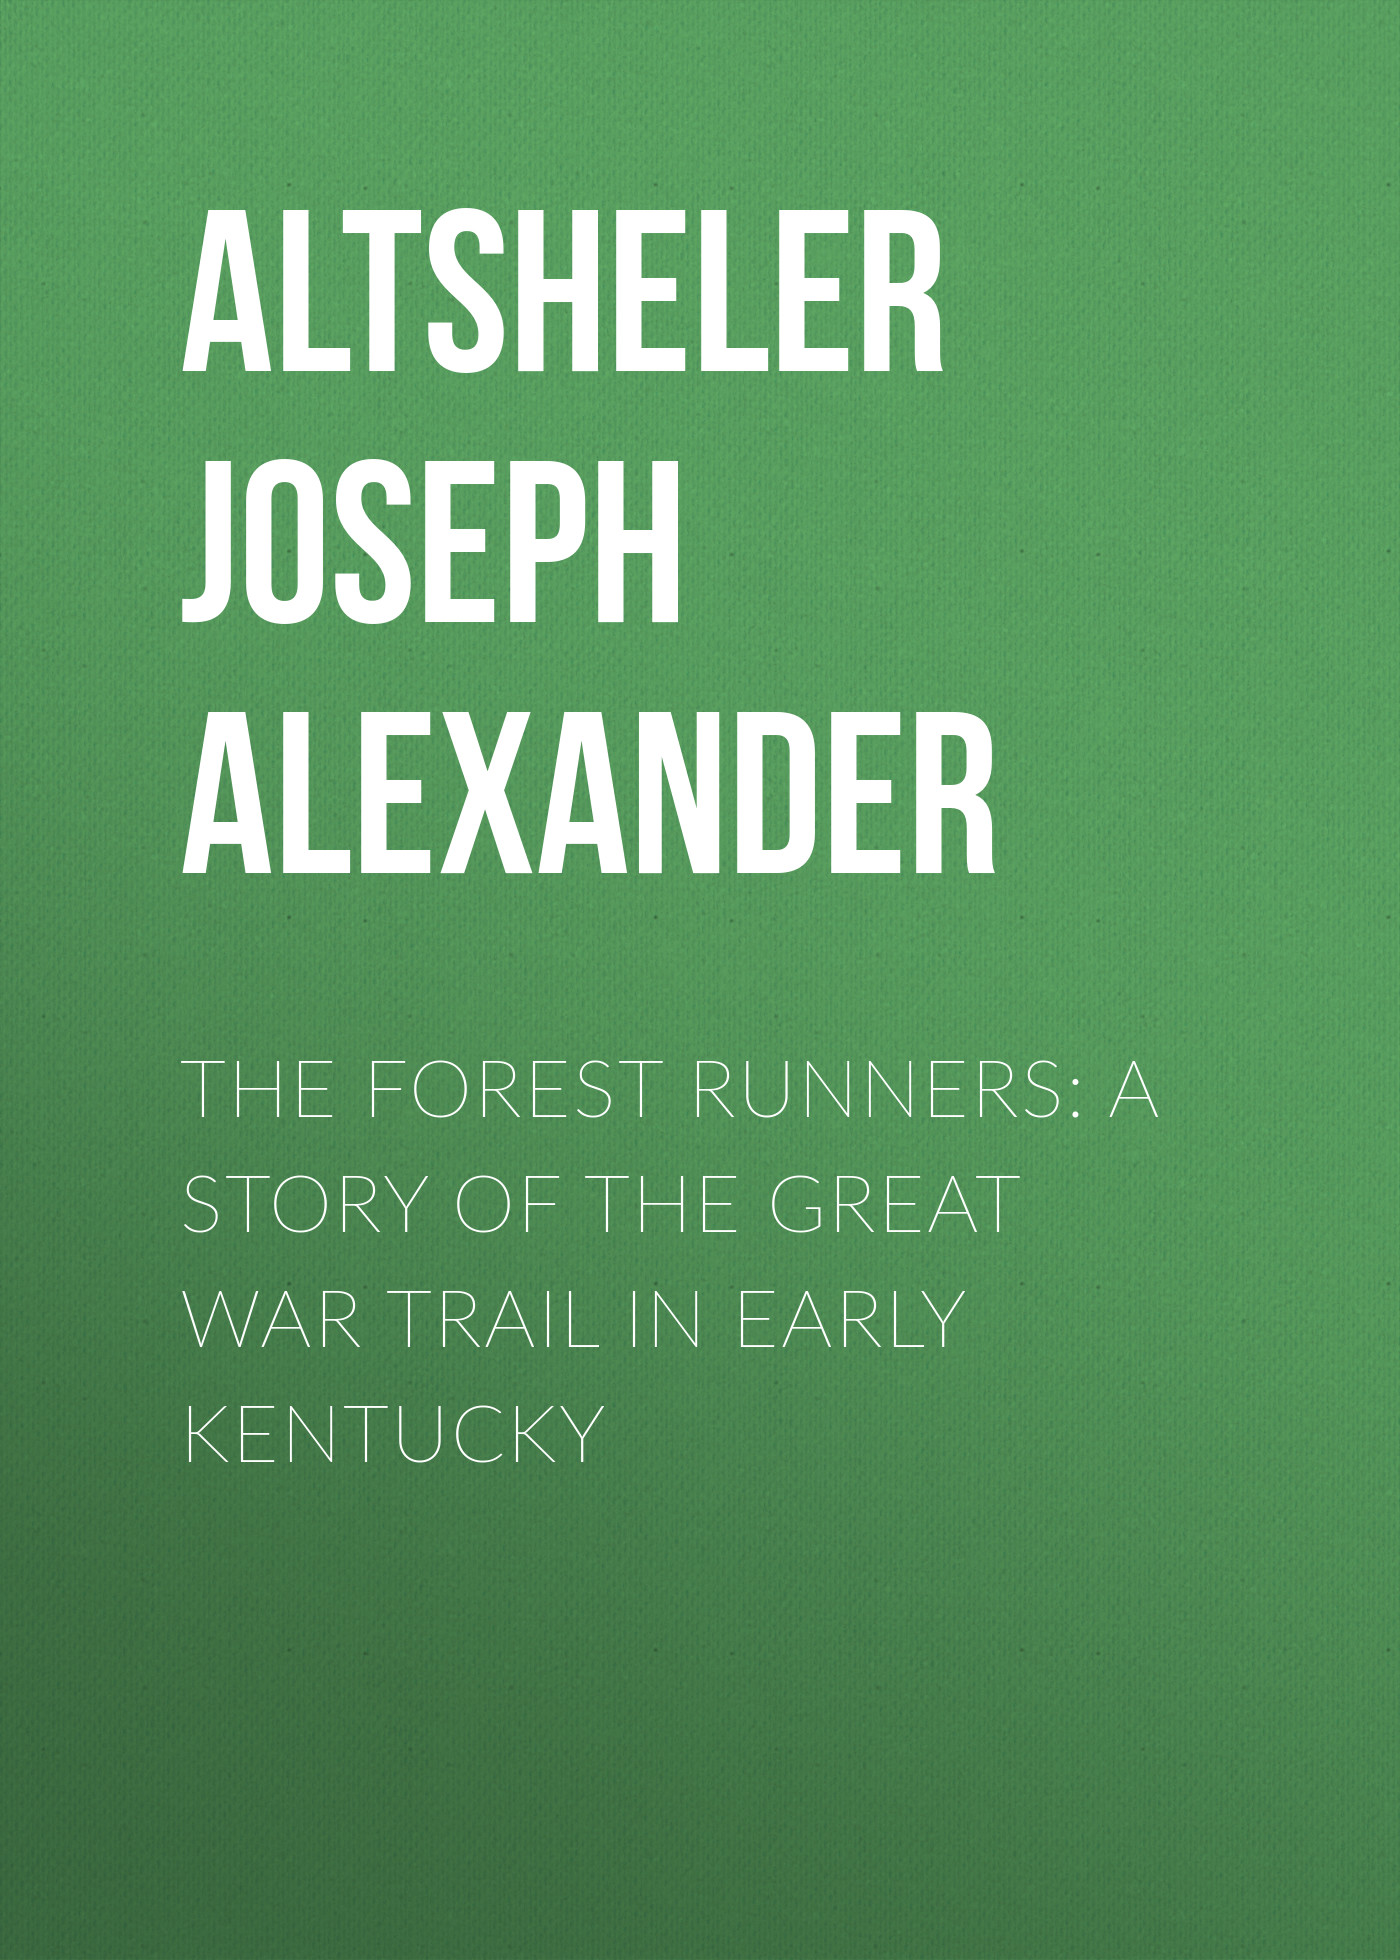 Altsheler Joseph Alexander The Forest Runners: A Story of the Great War Trail in Early Kentucky цена